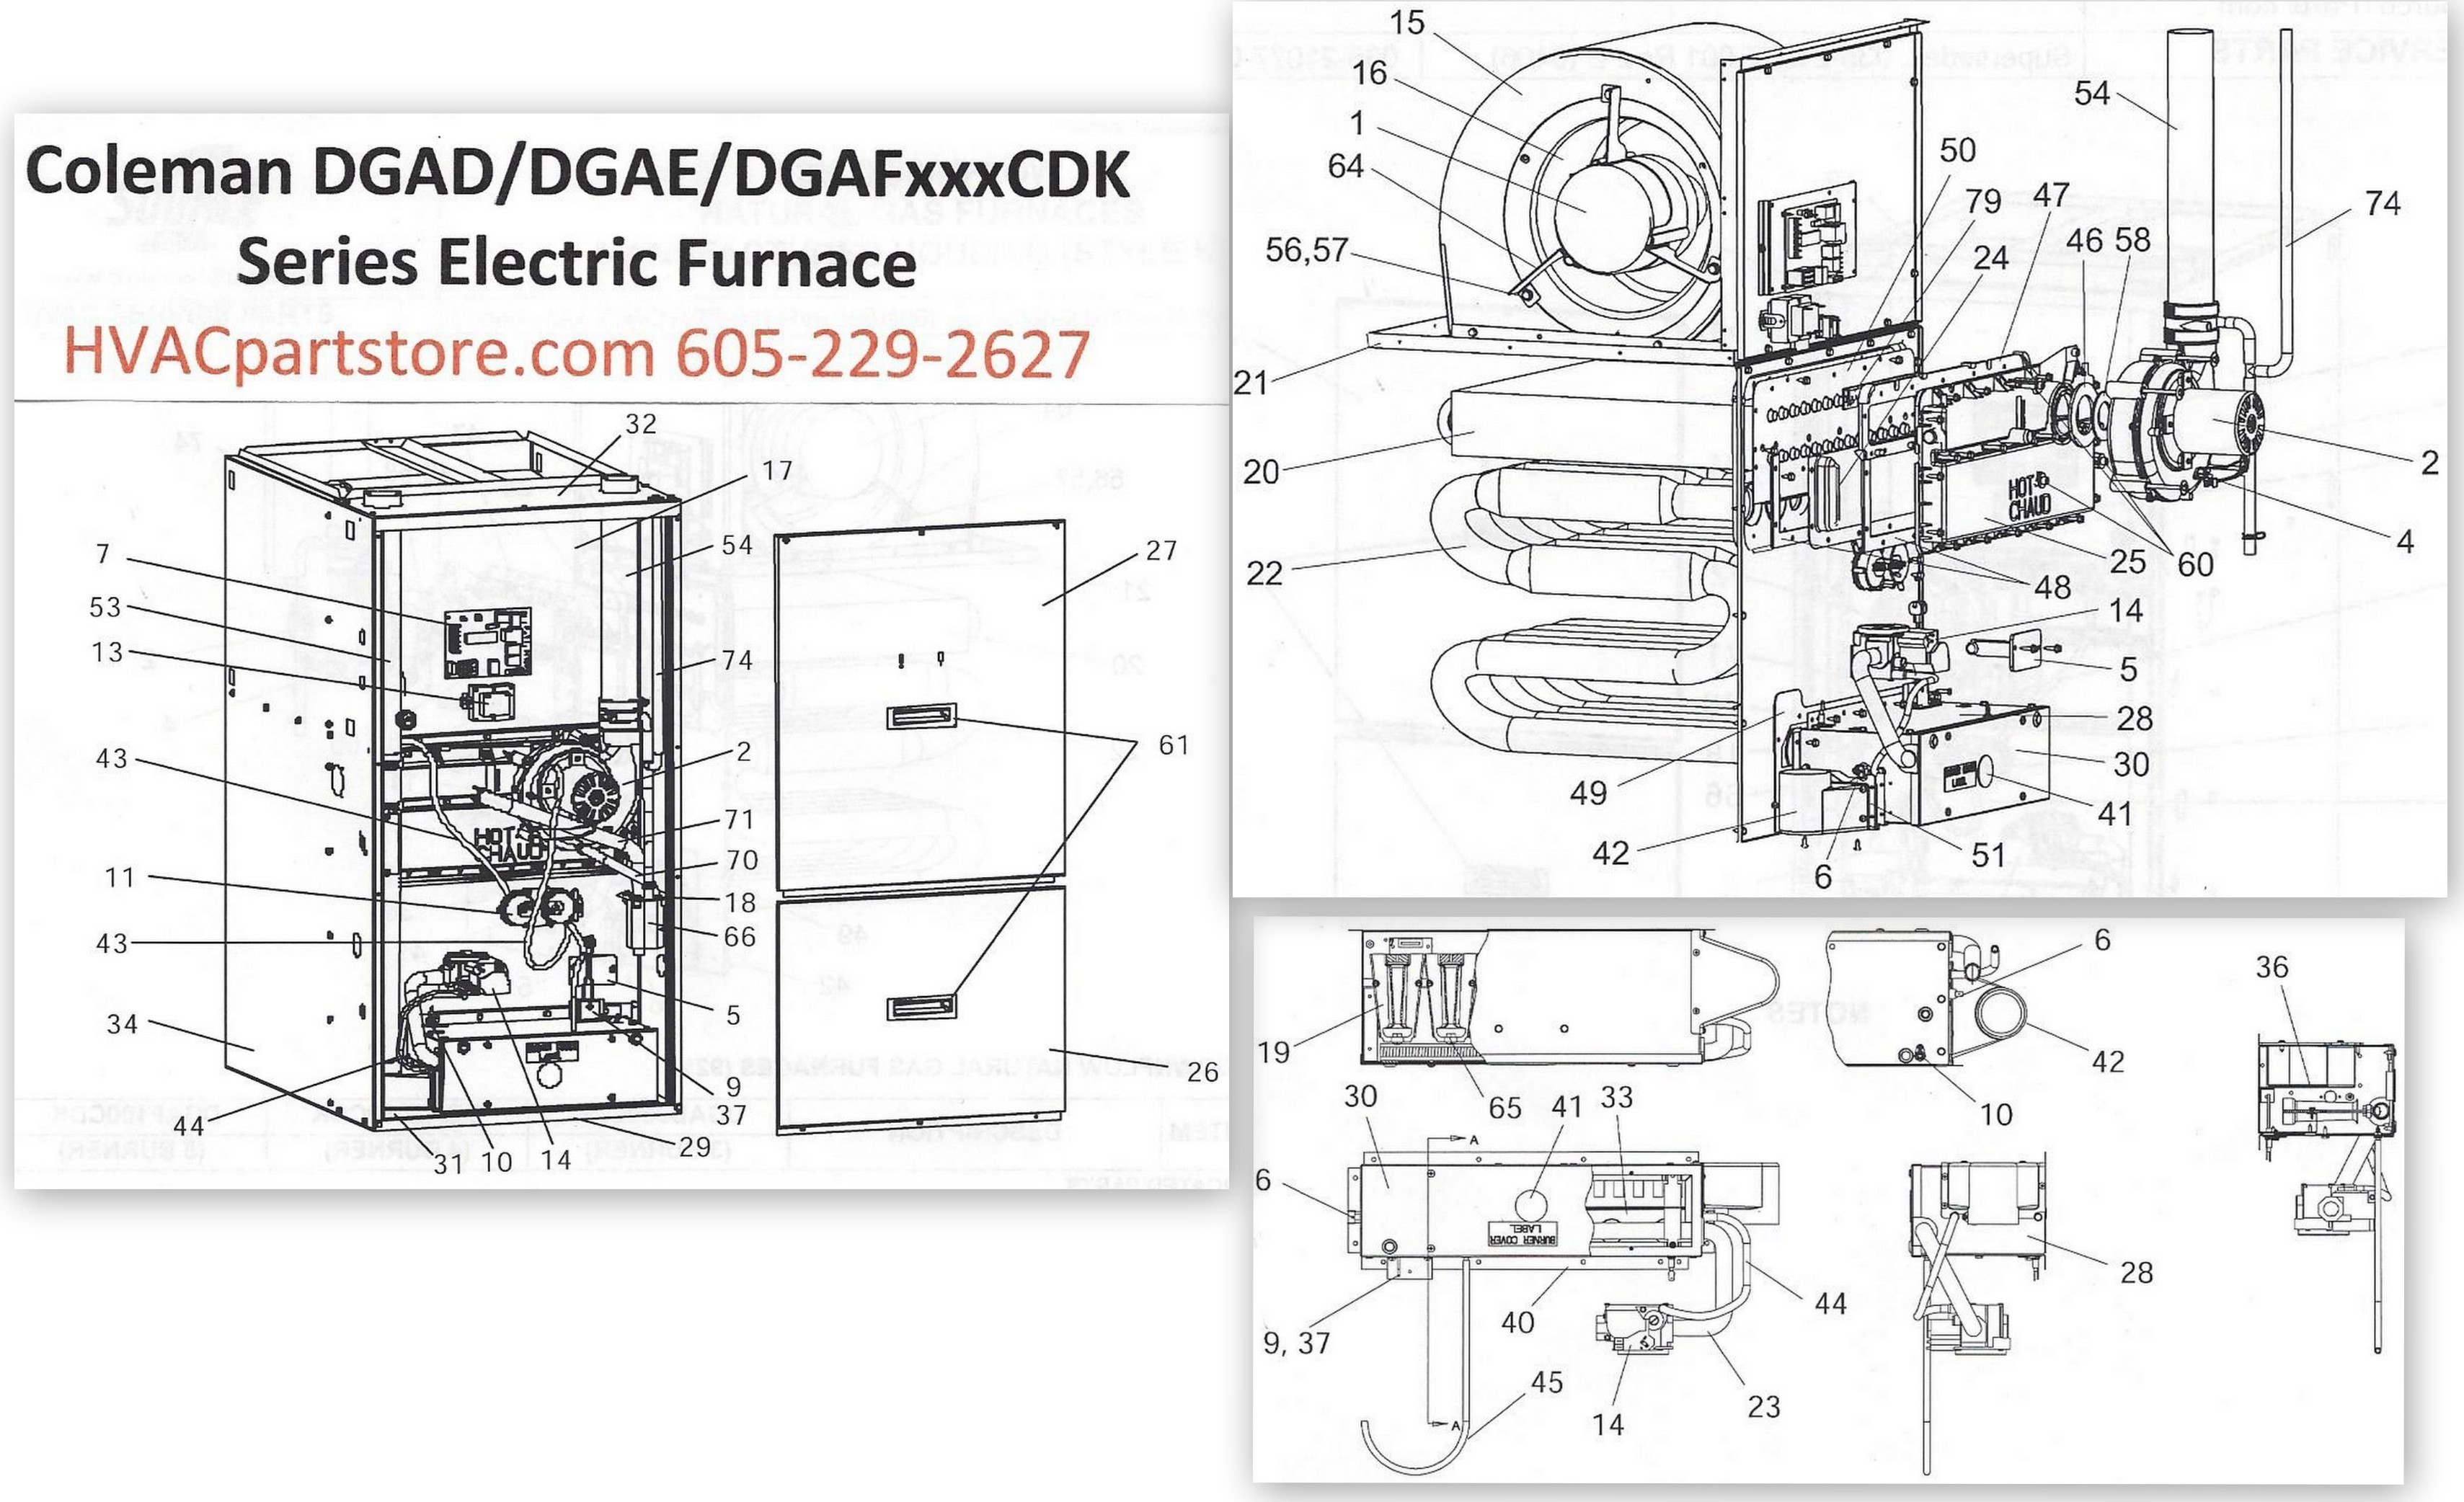 Suburban Nt32 Furnace Wiring Diagram Library Computer Parts Atwood For Rv Best 8500 Board